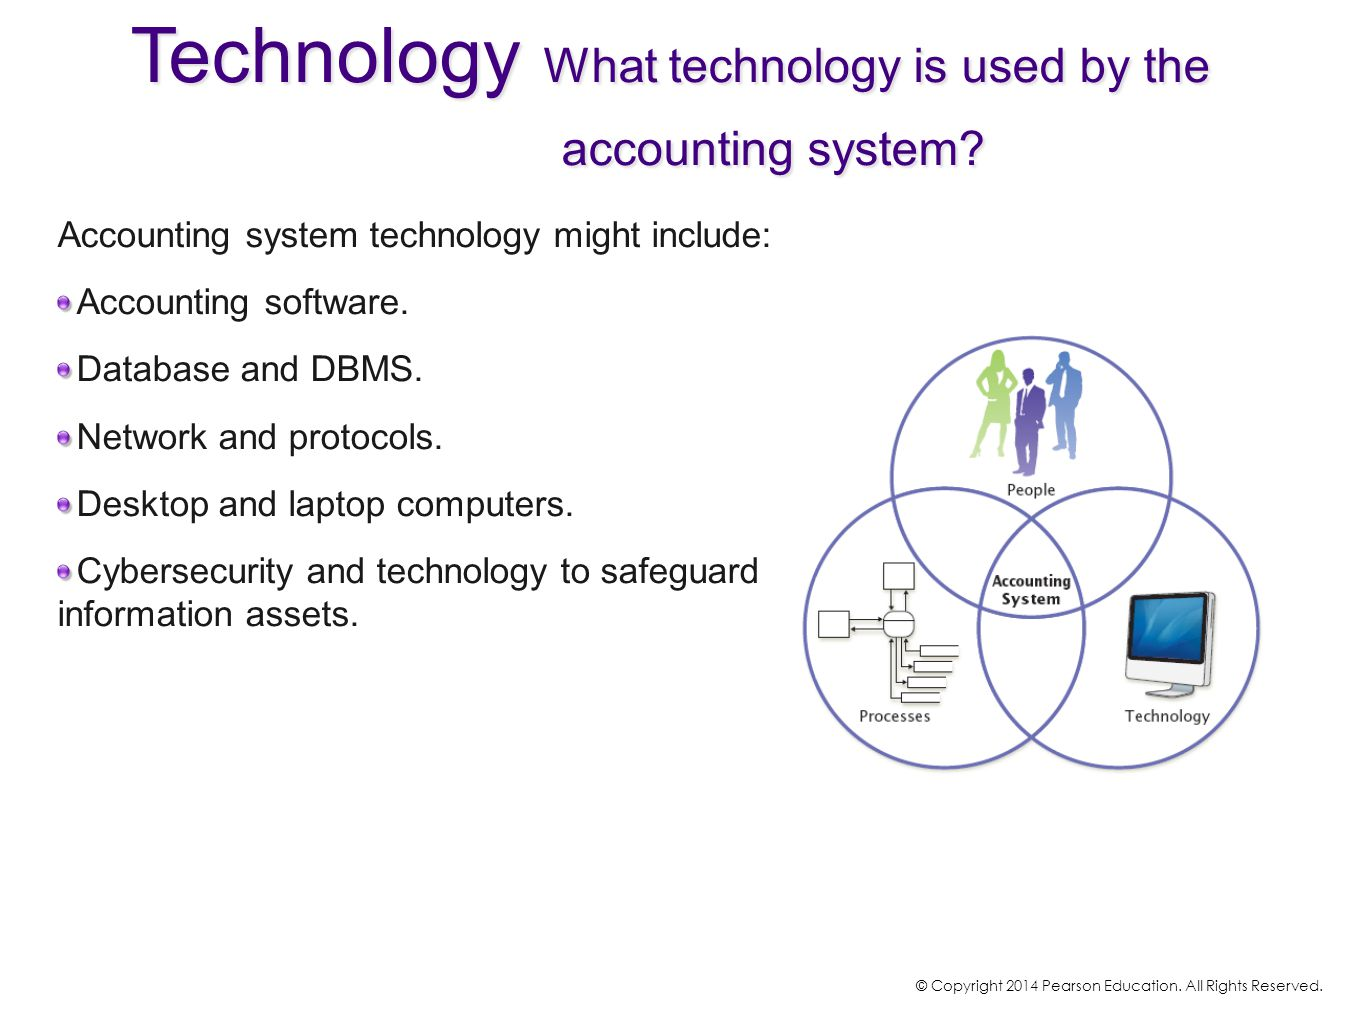 Technology What technology is used by the accounting system